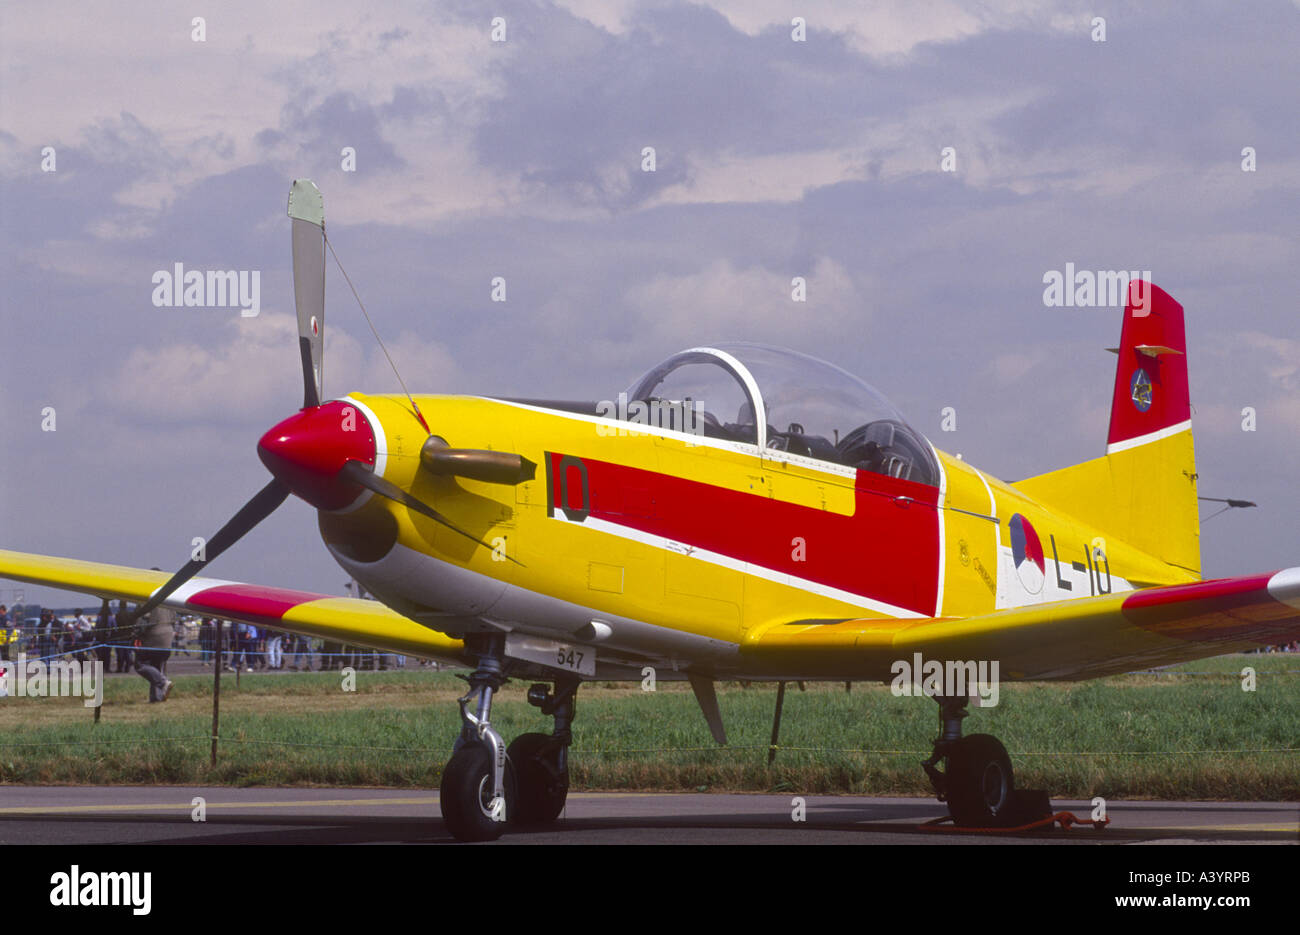 Pilatus PC-7 Turbo painted High Visibility Yellow with Red and White Striping.   GAV 2254-229 - Stock Image